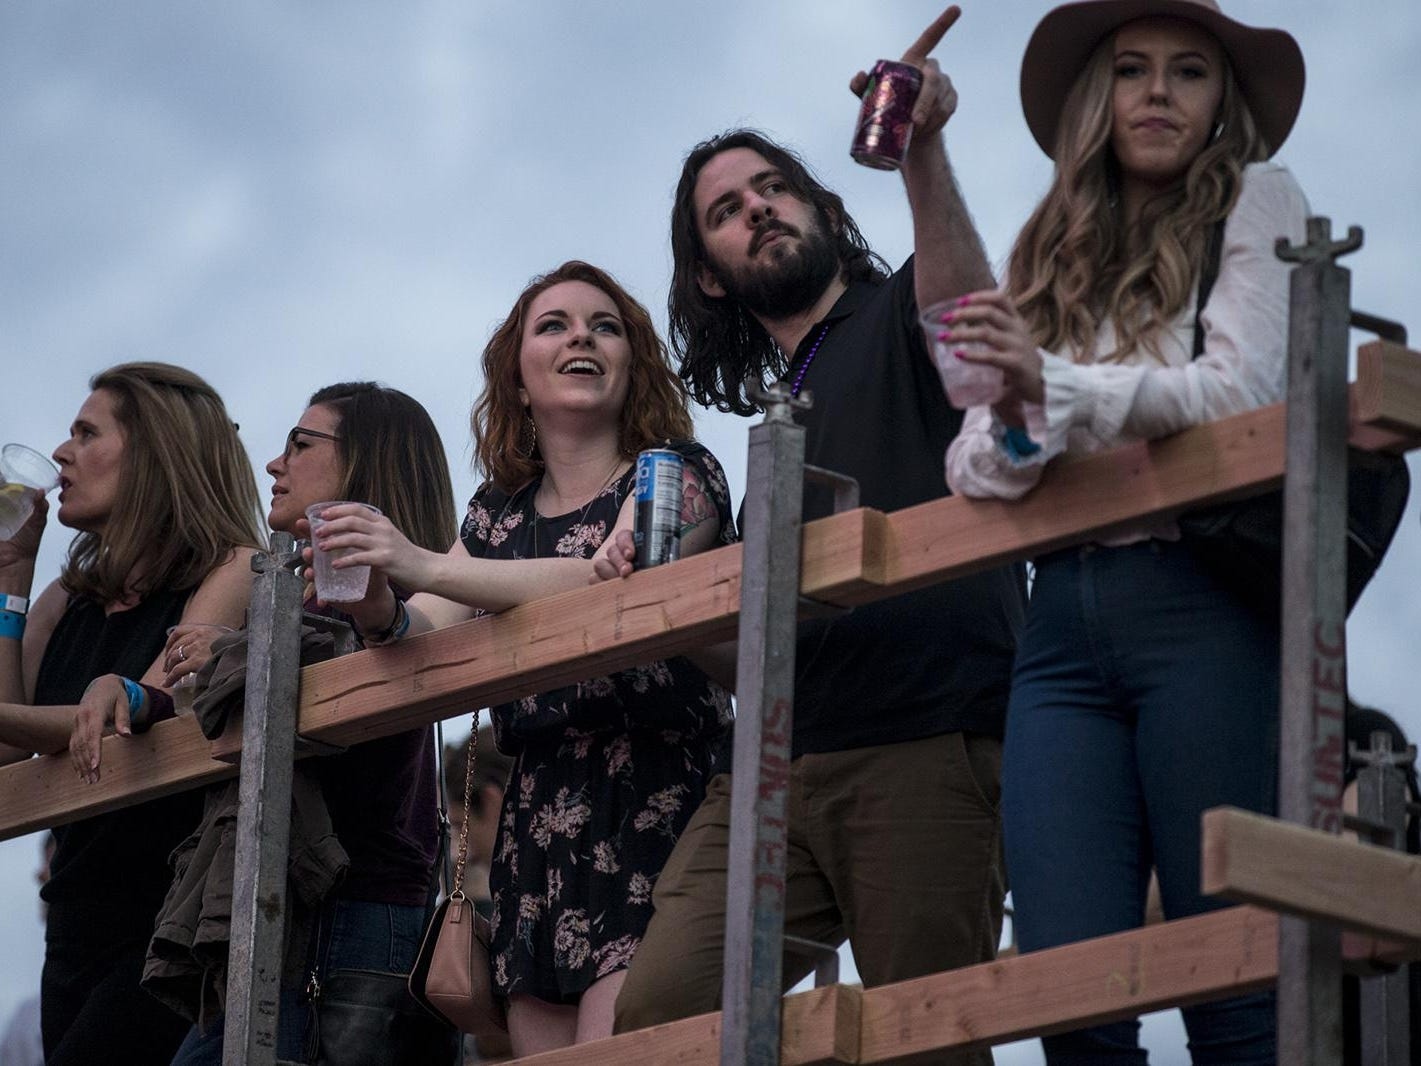 Fans listen to Mansionair perform during McDowell Mountain Music Festival on Friday, March 1, 2019, at Margaret T. Hance Park in Phoenix.